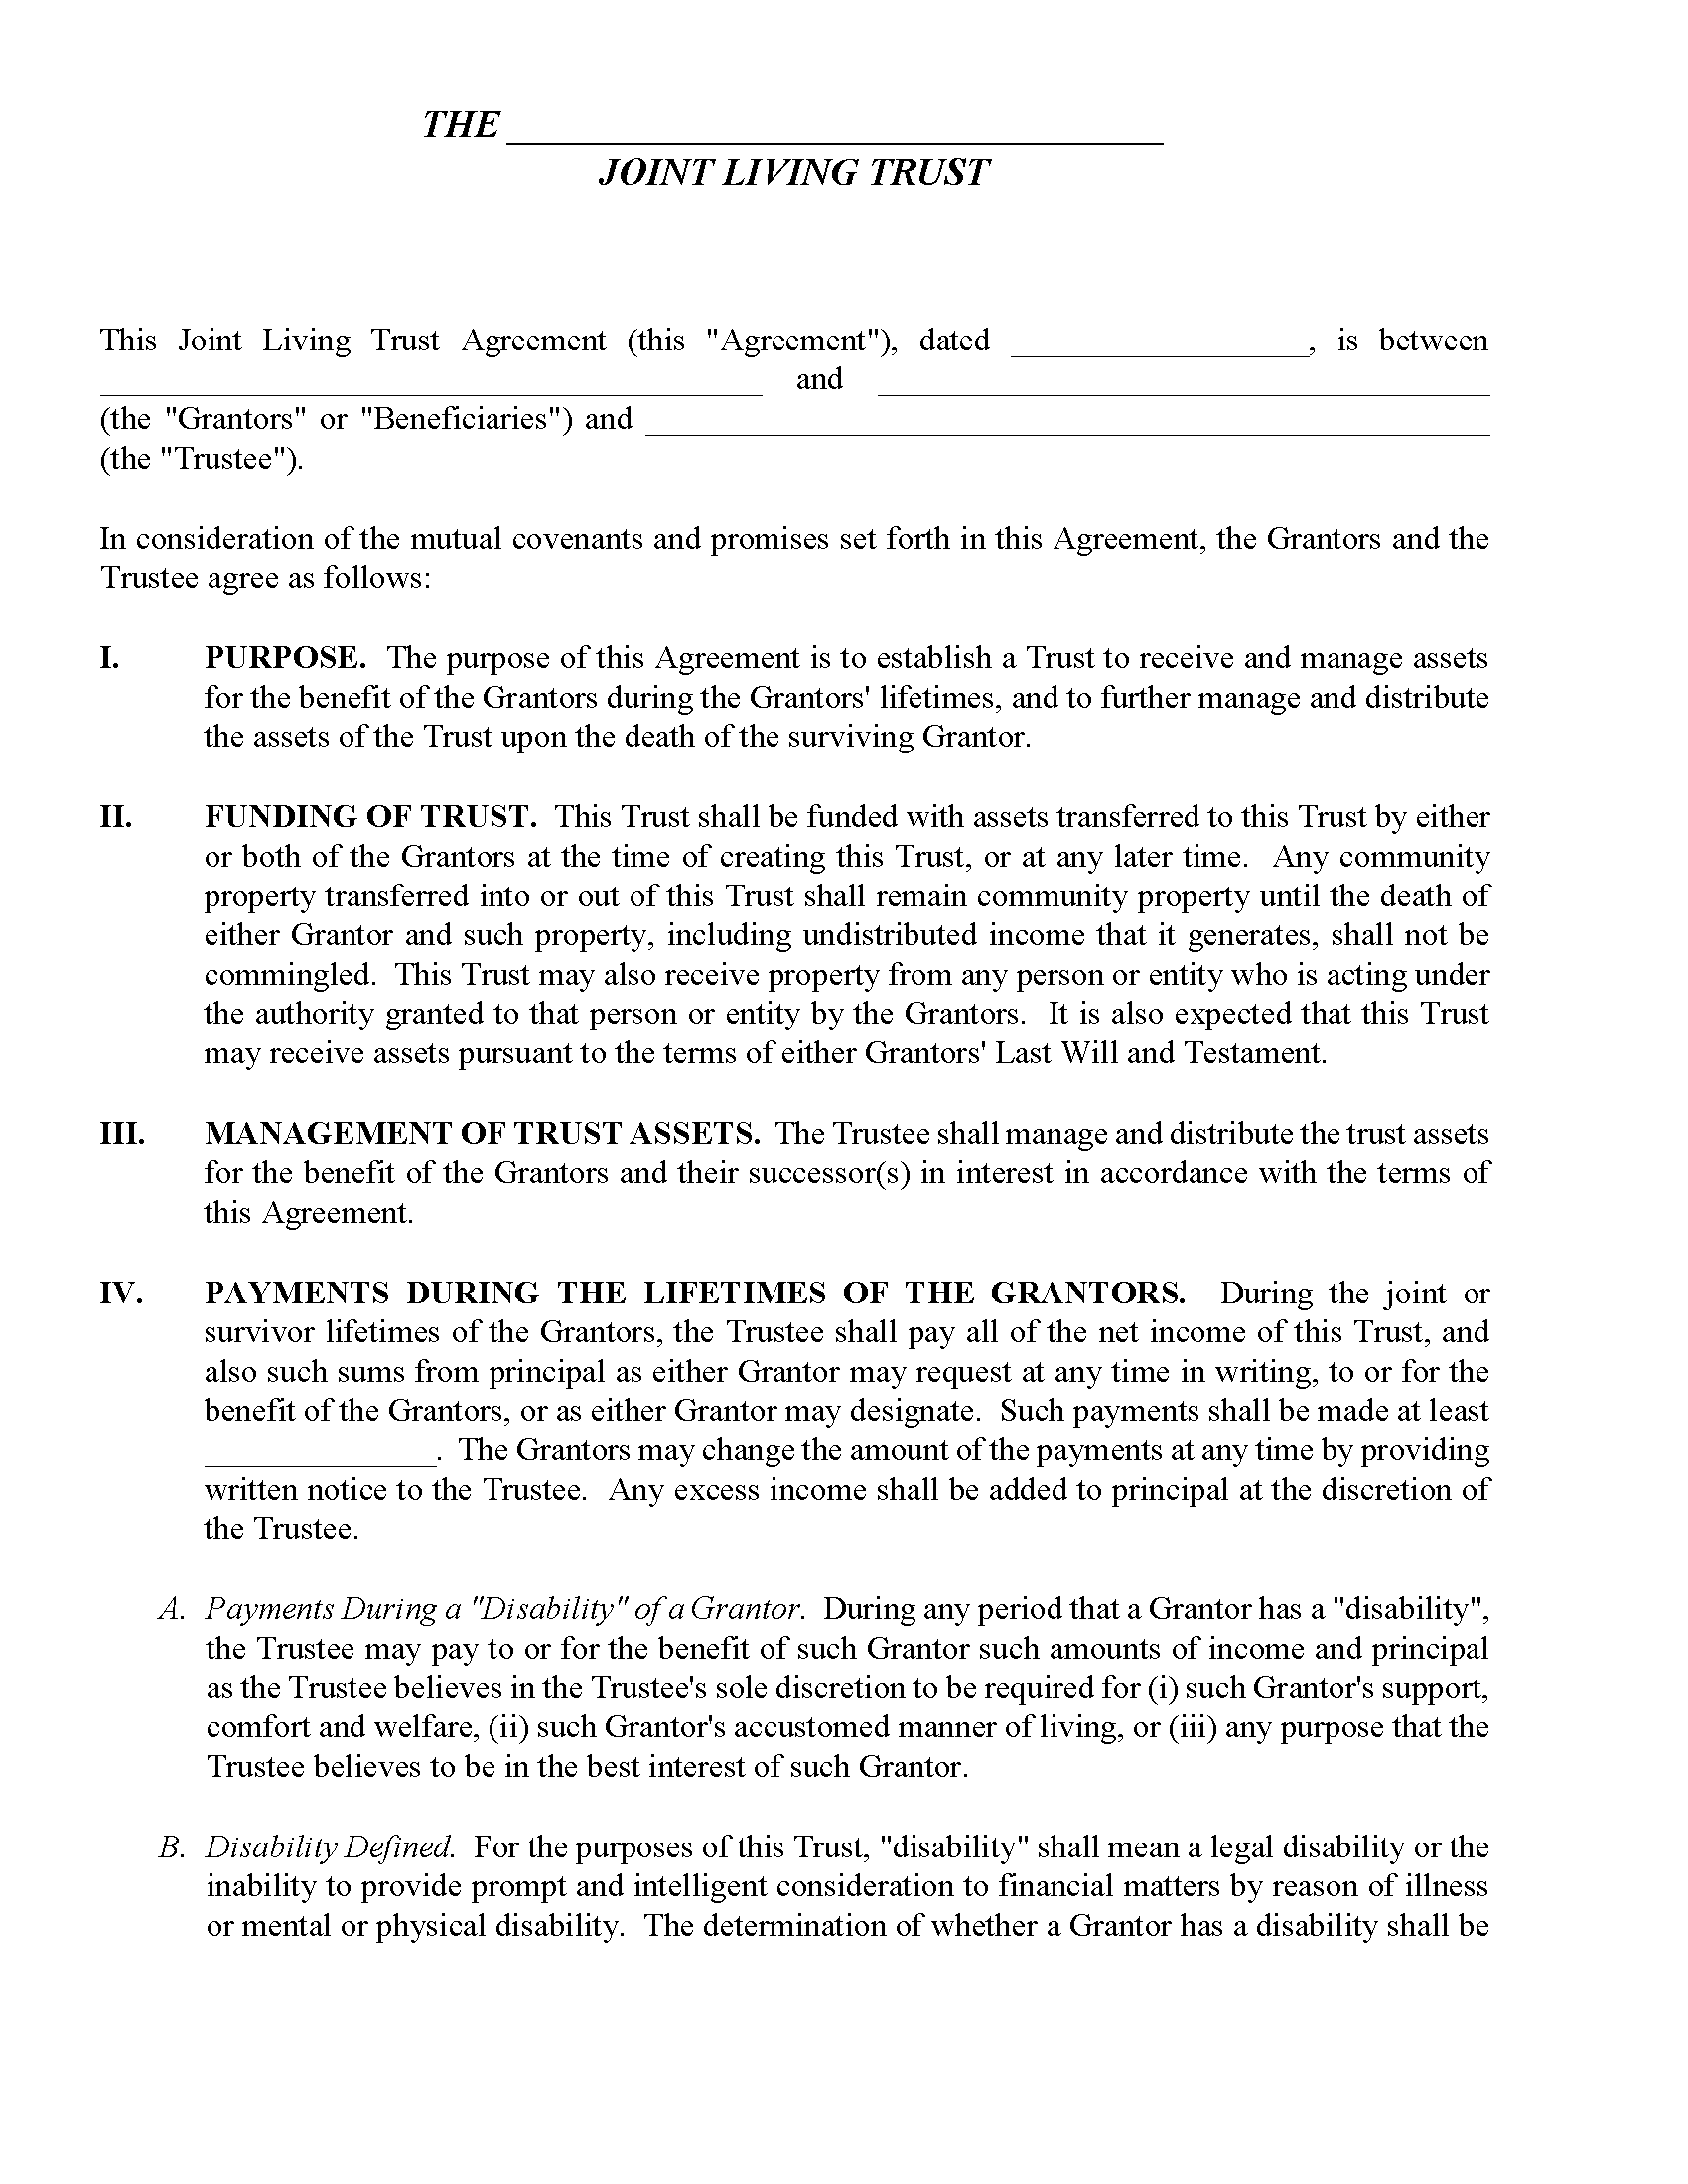 Washington Joint Living Trust Form